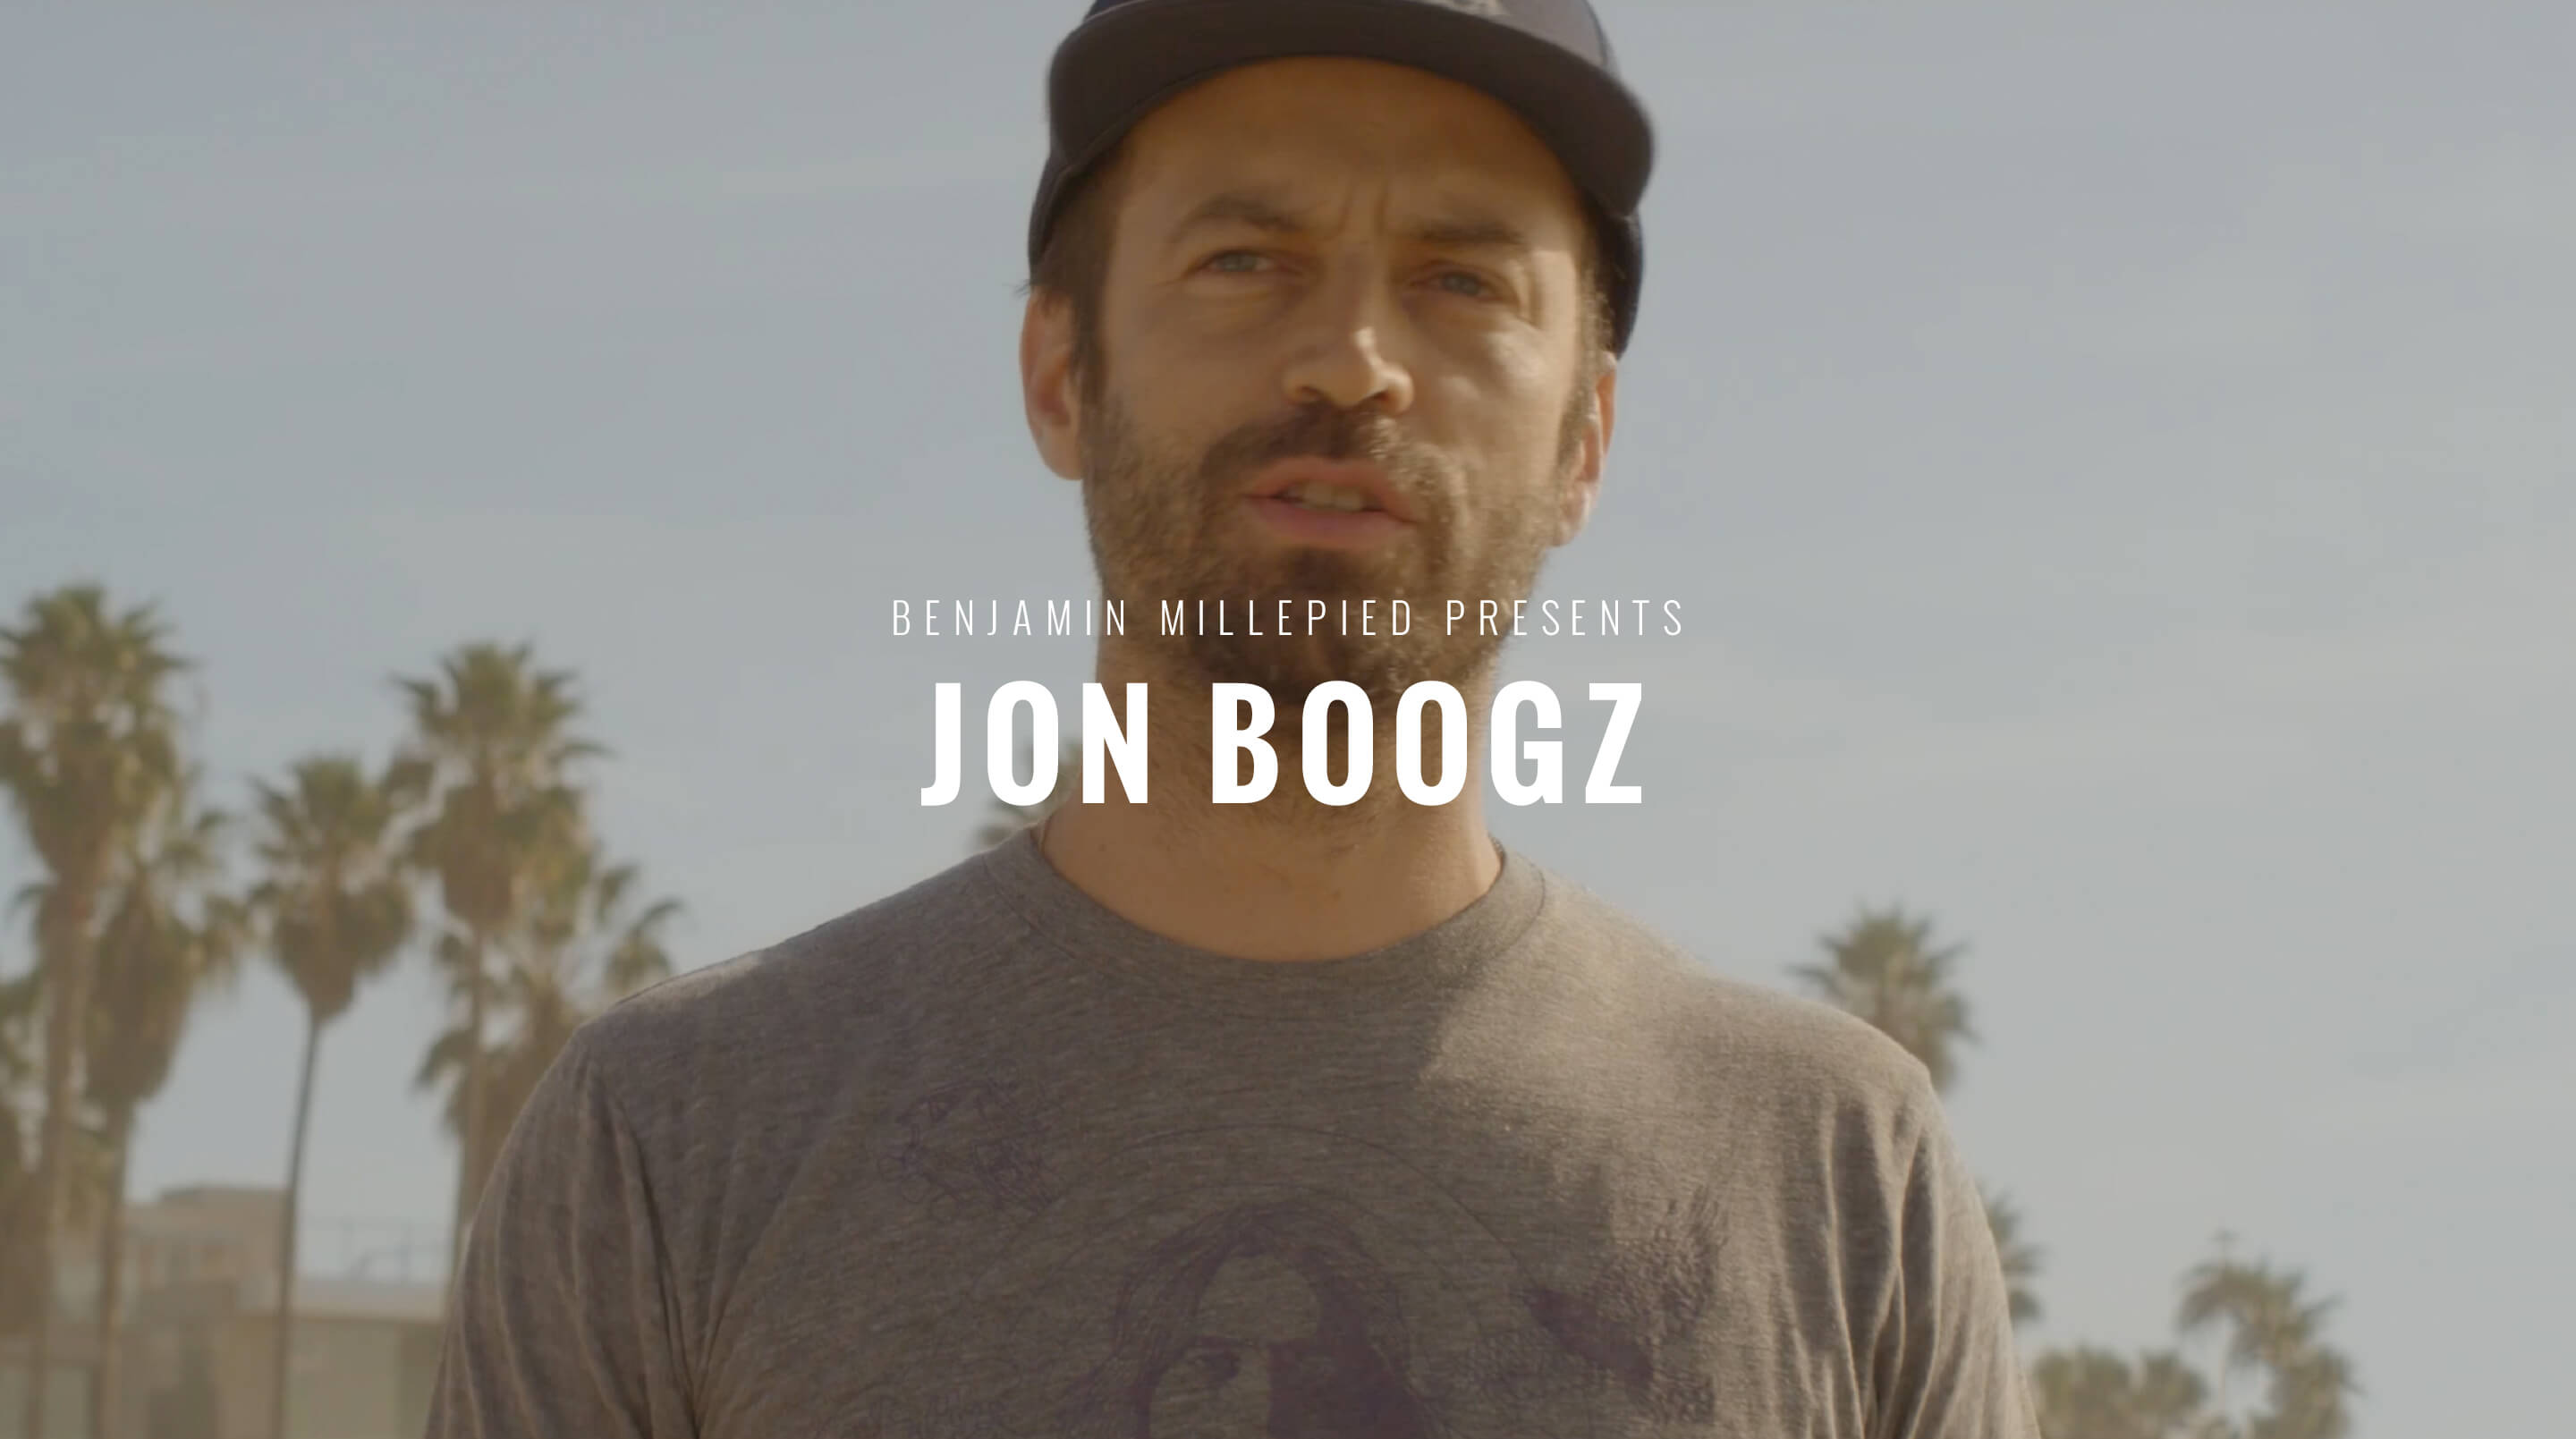 Benjamin Millepied Presents Jon Boogz